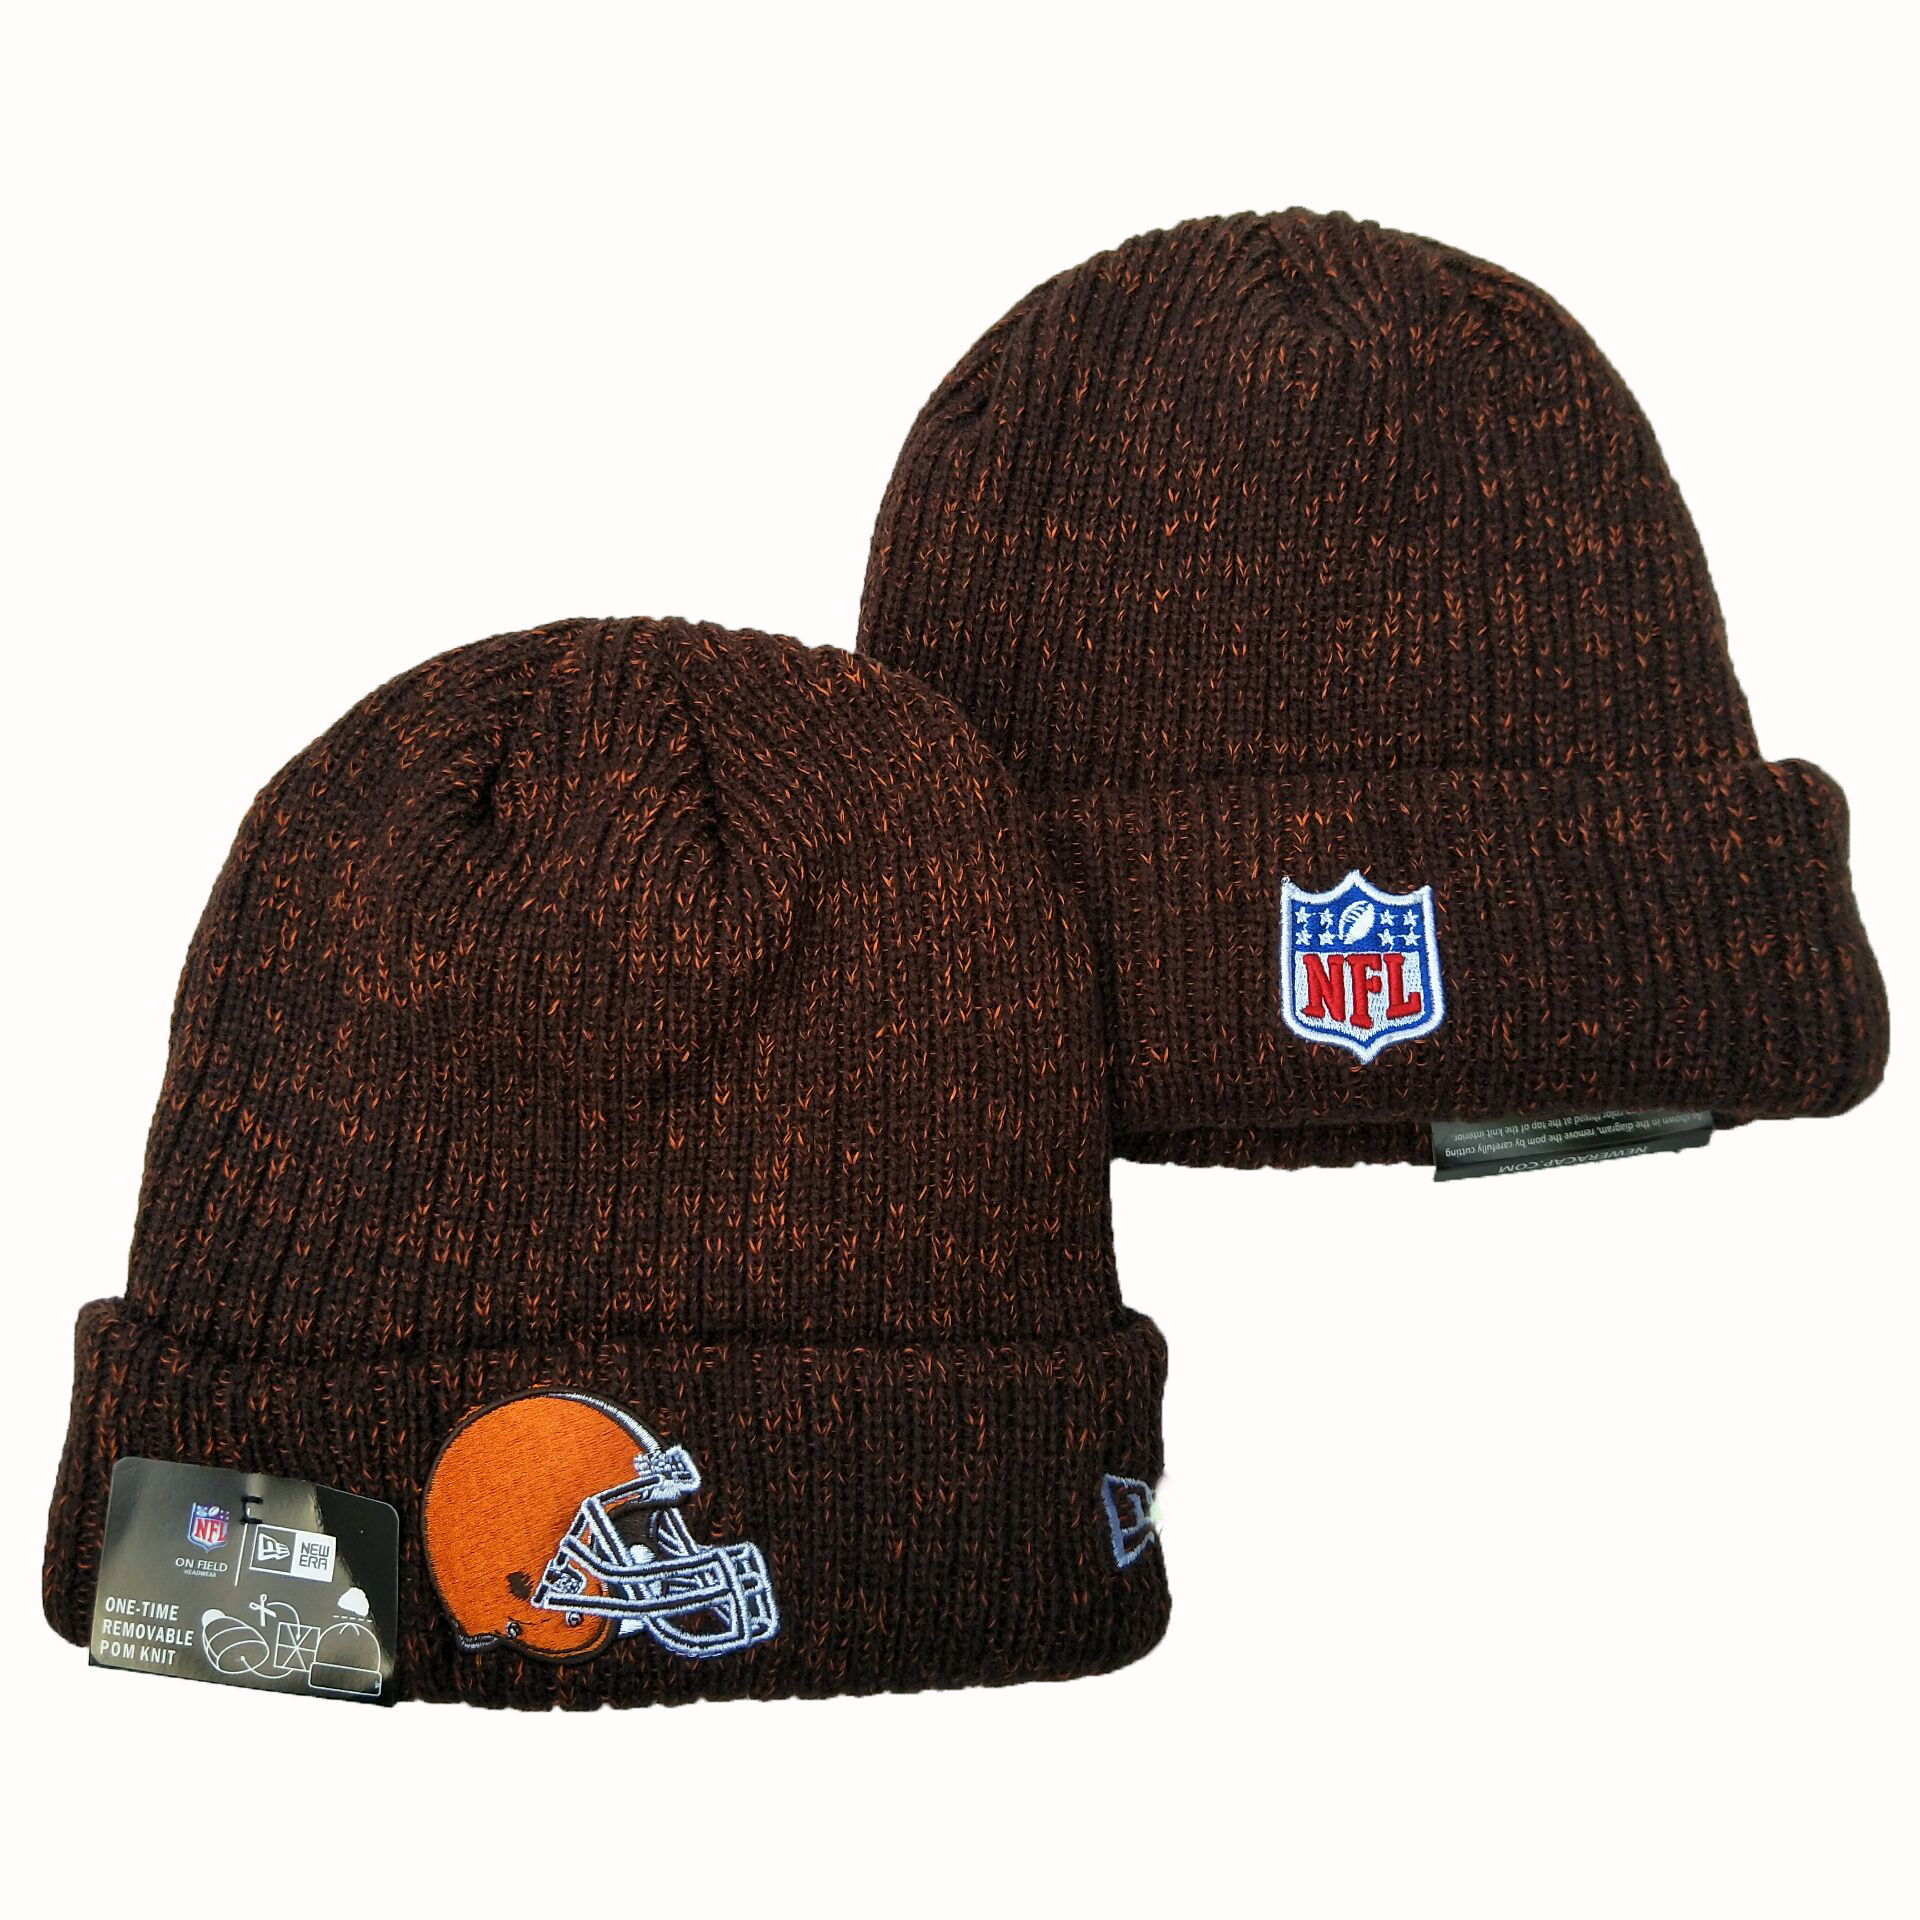 Cleveland Browns Knit Hats 035